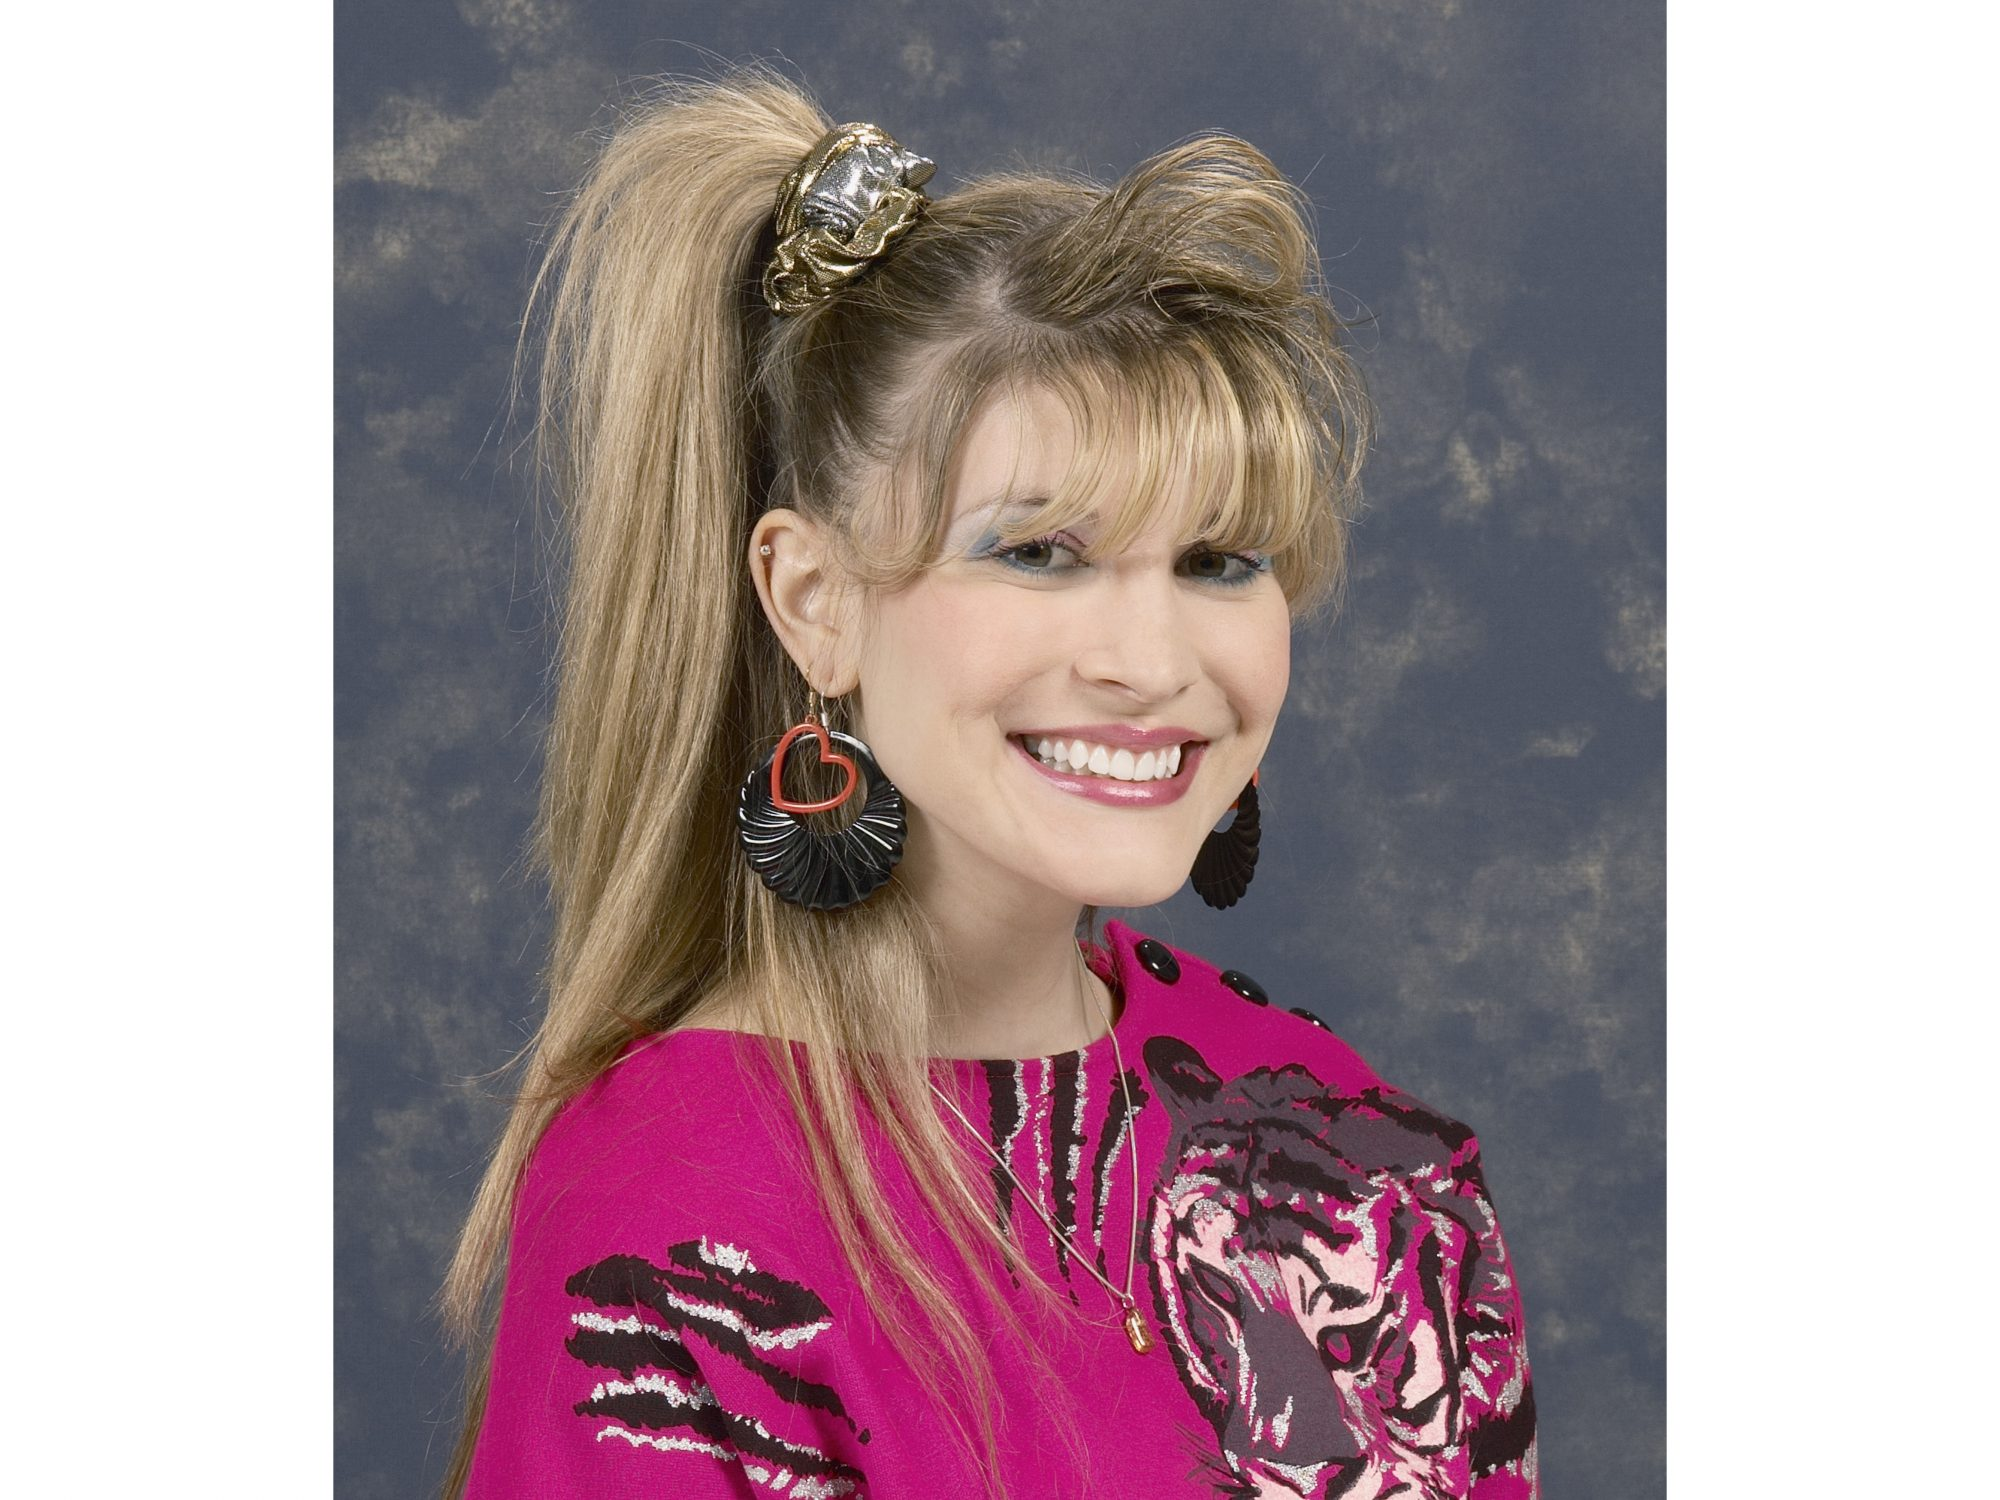 80s School Picture with Scrunchie